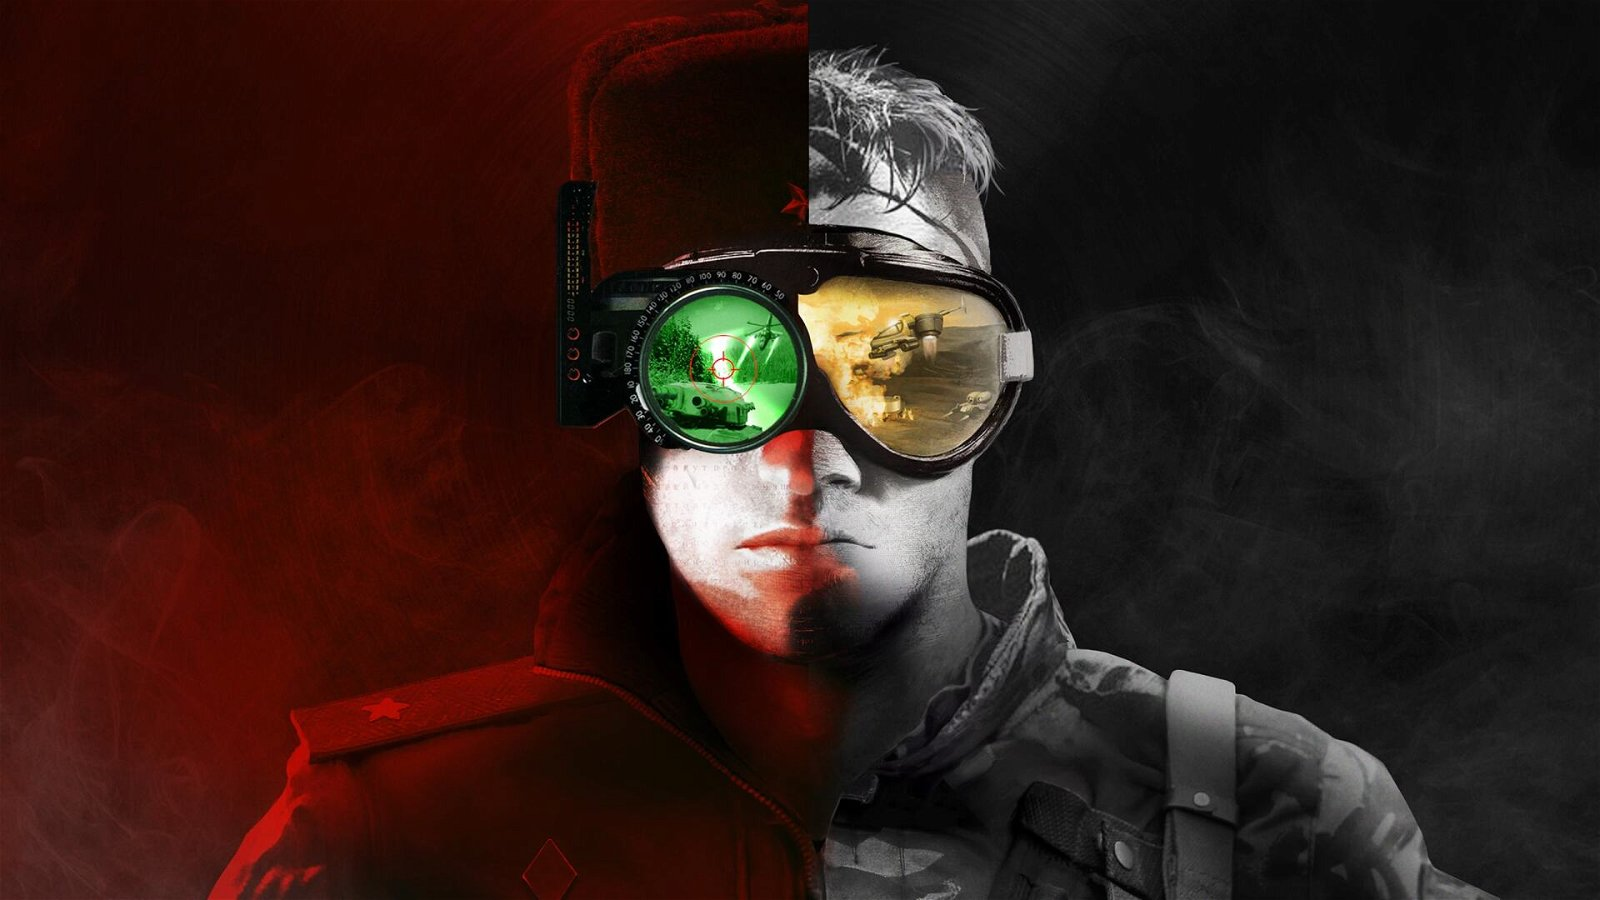 Command & Conquer Developers Release Source Codes for Mods 1